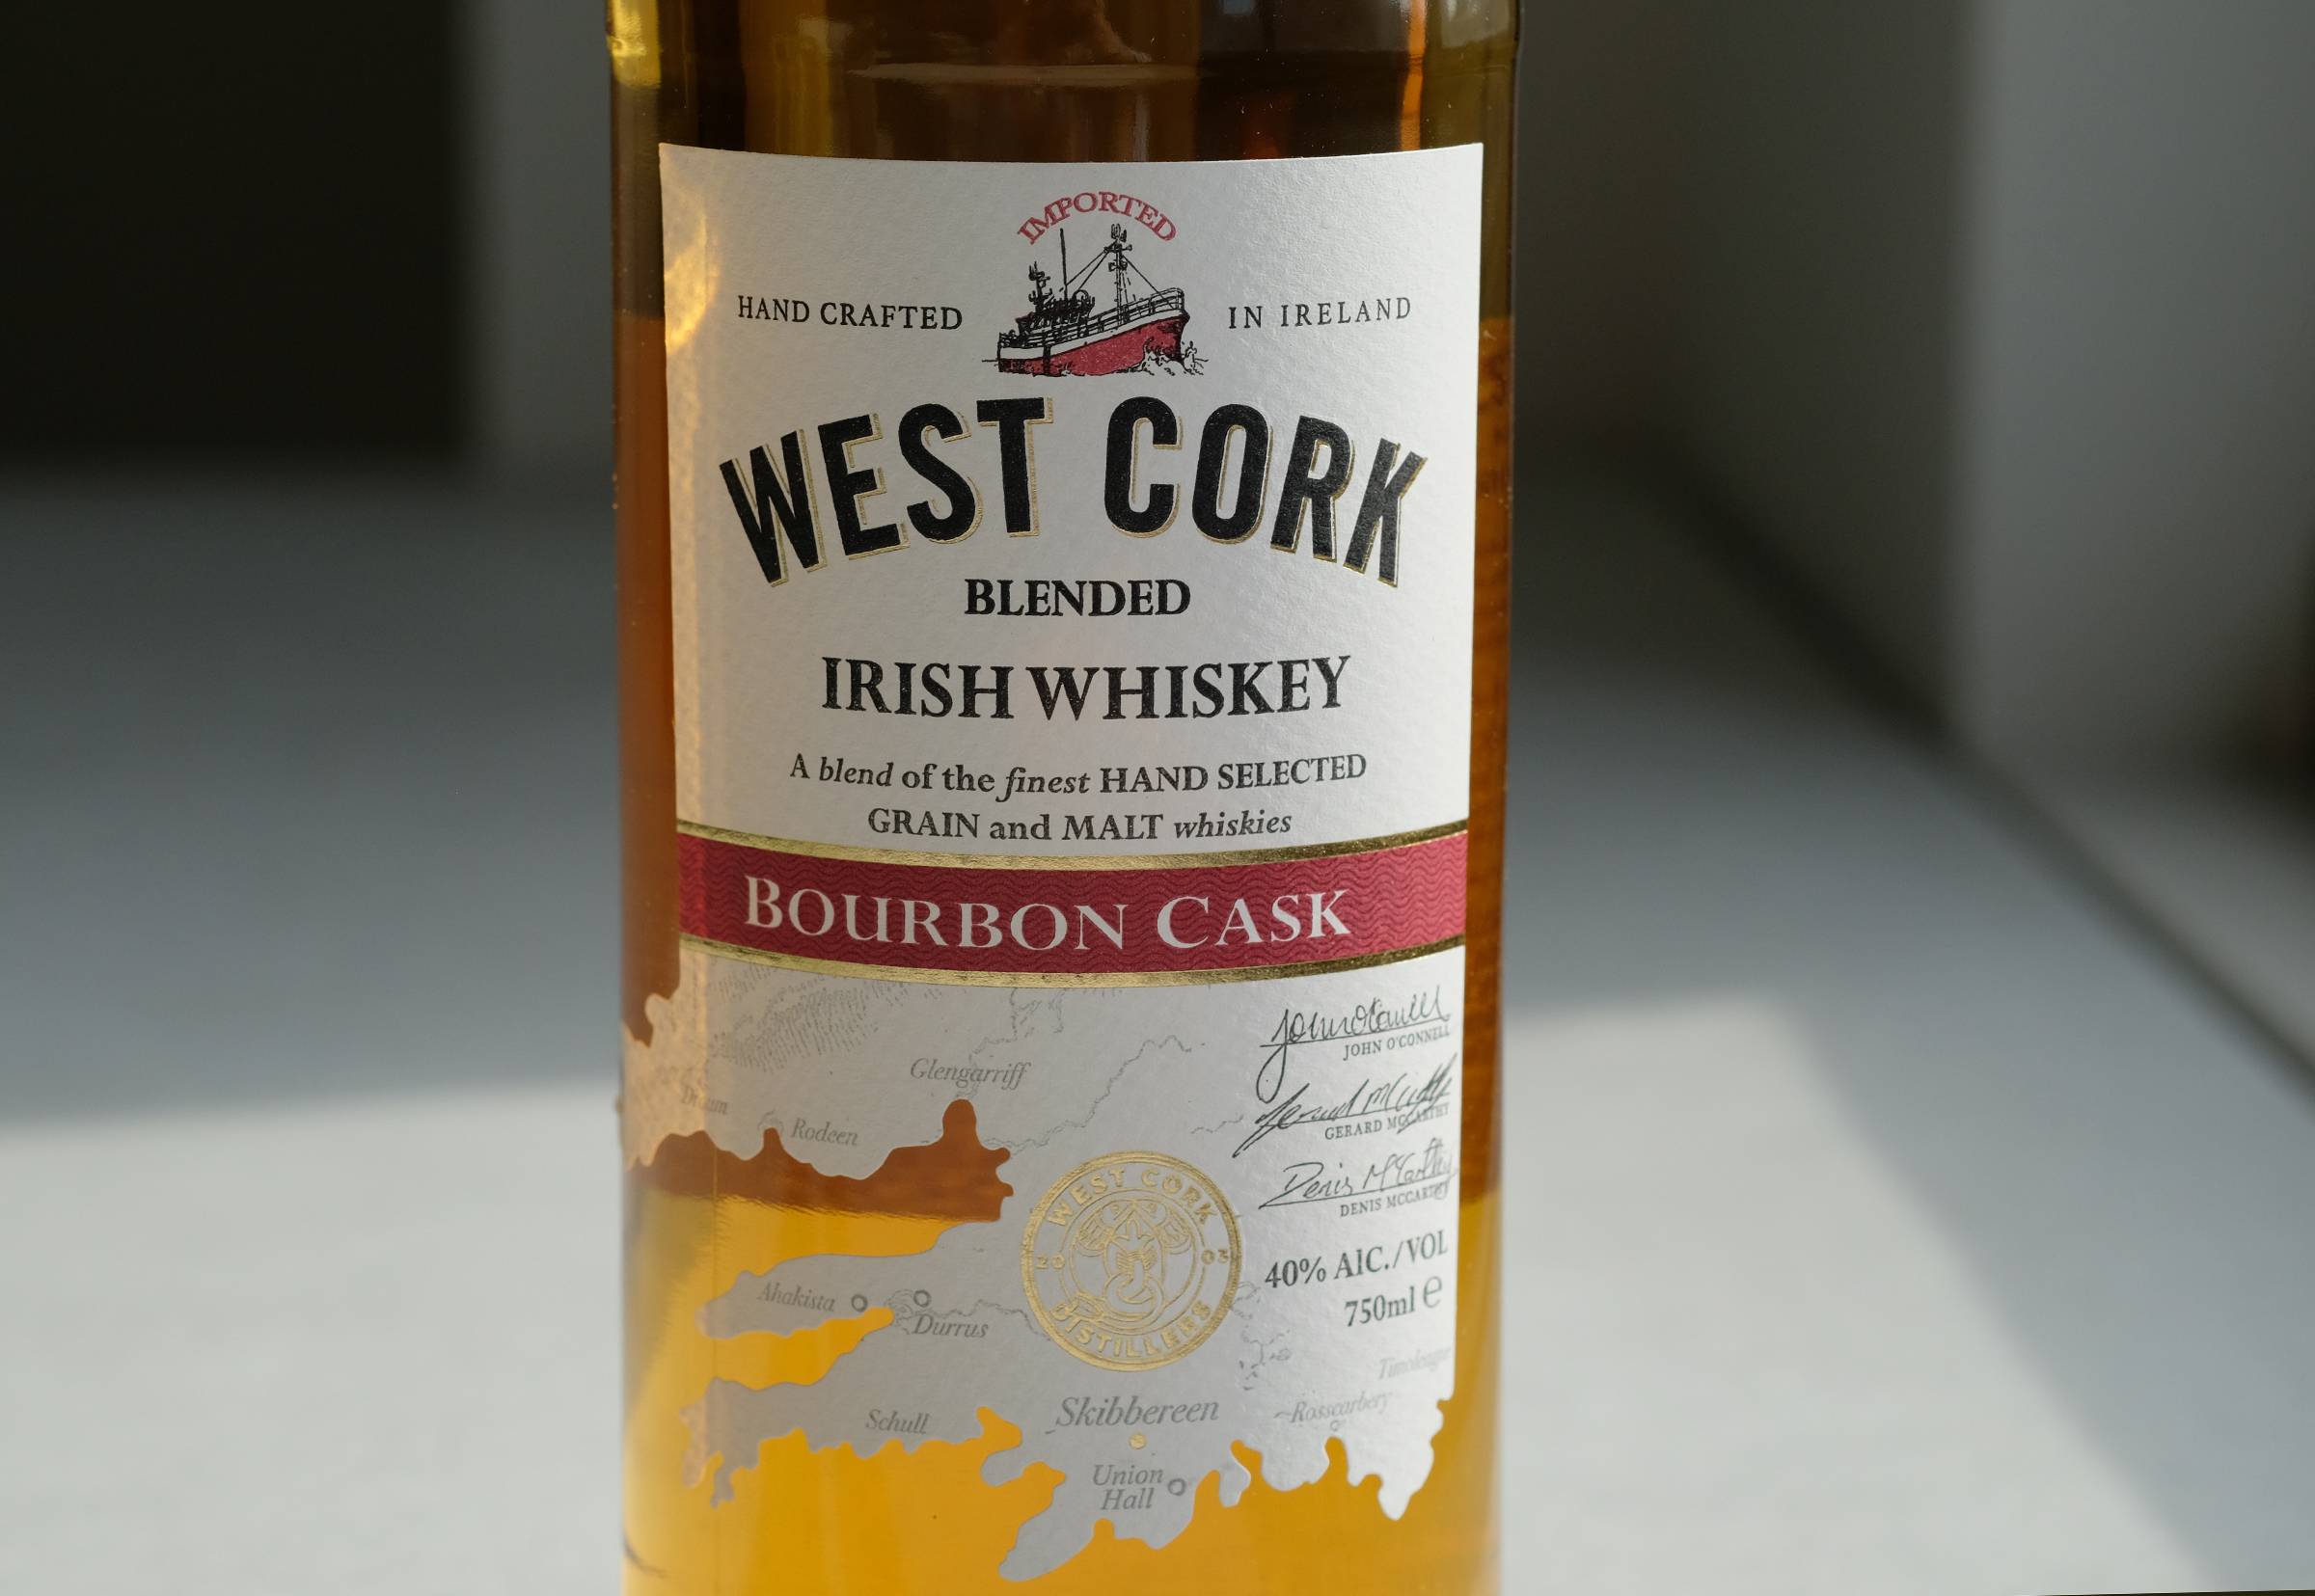 West Cork is a worthy entry level blended whiskey from Ireland.